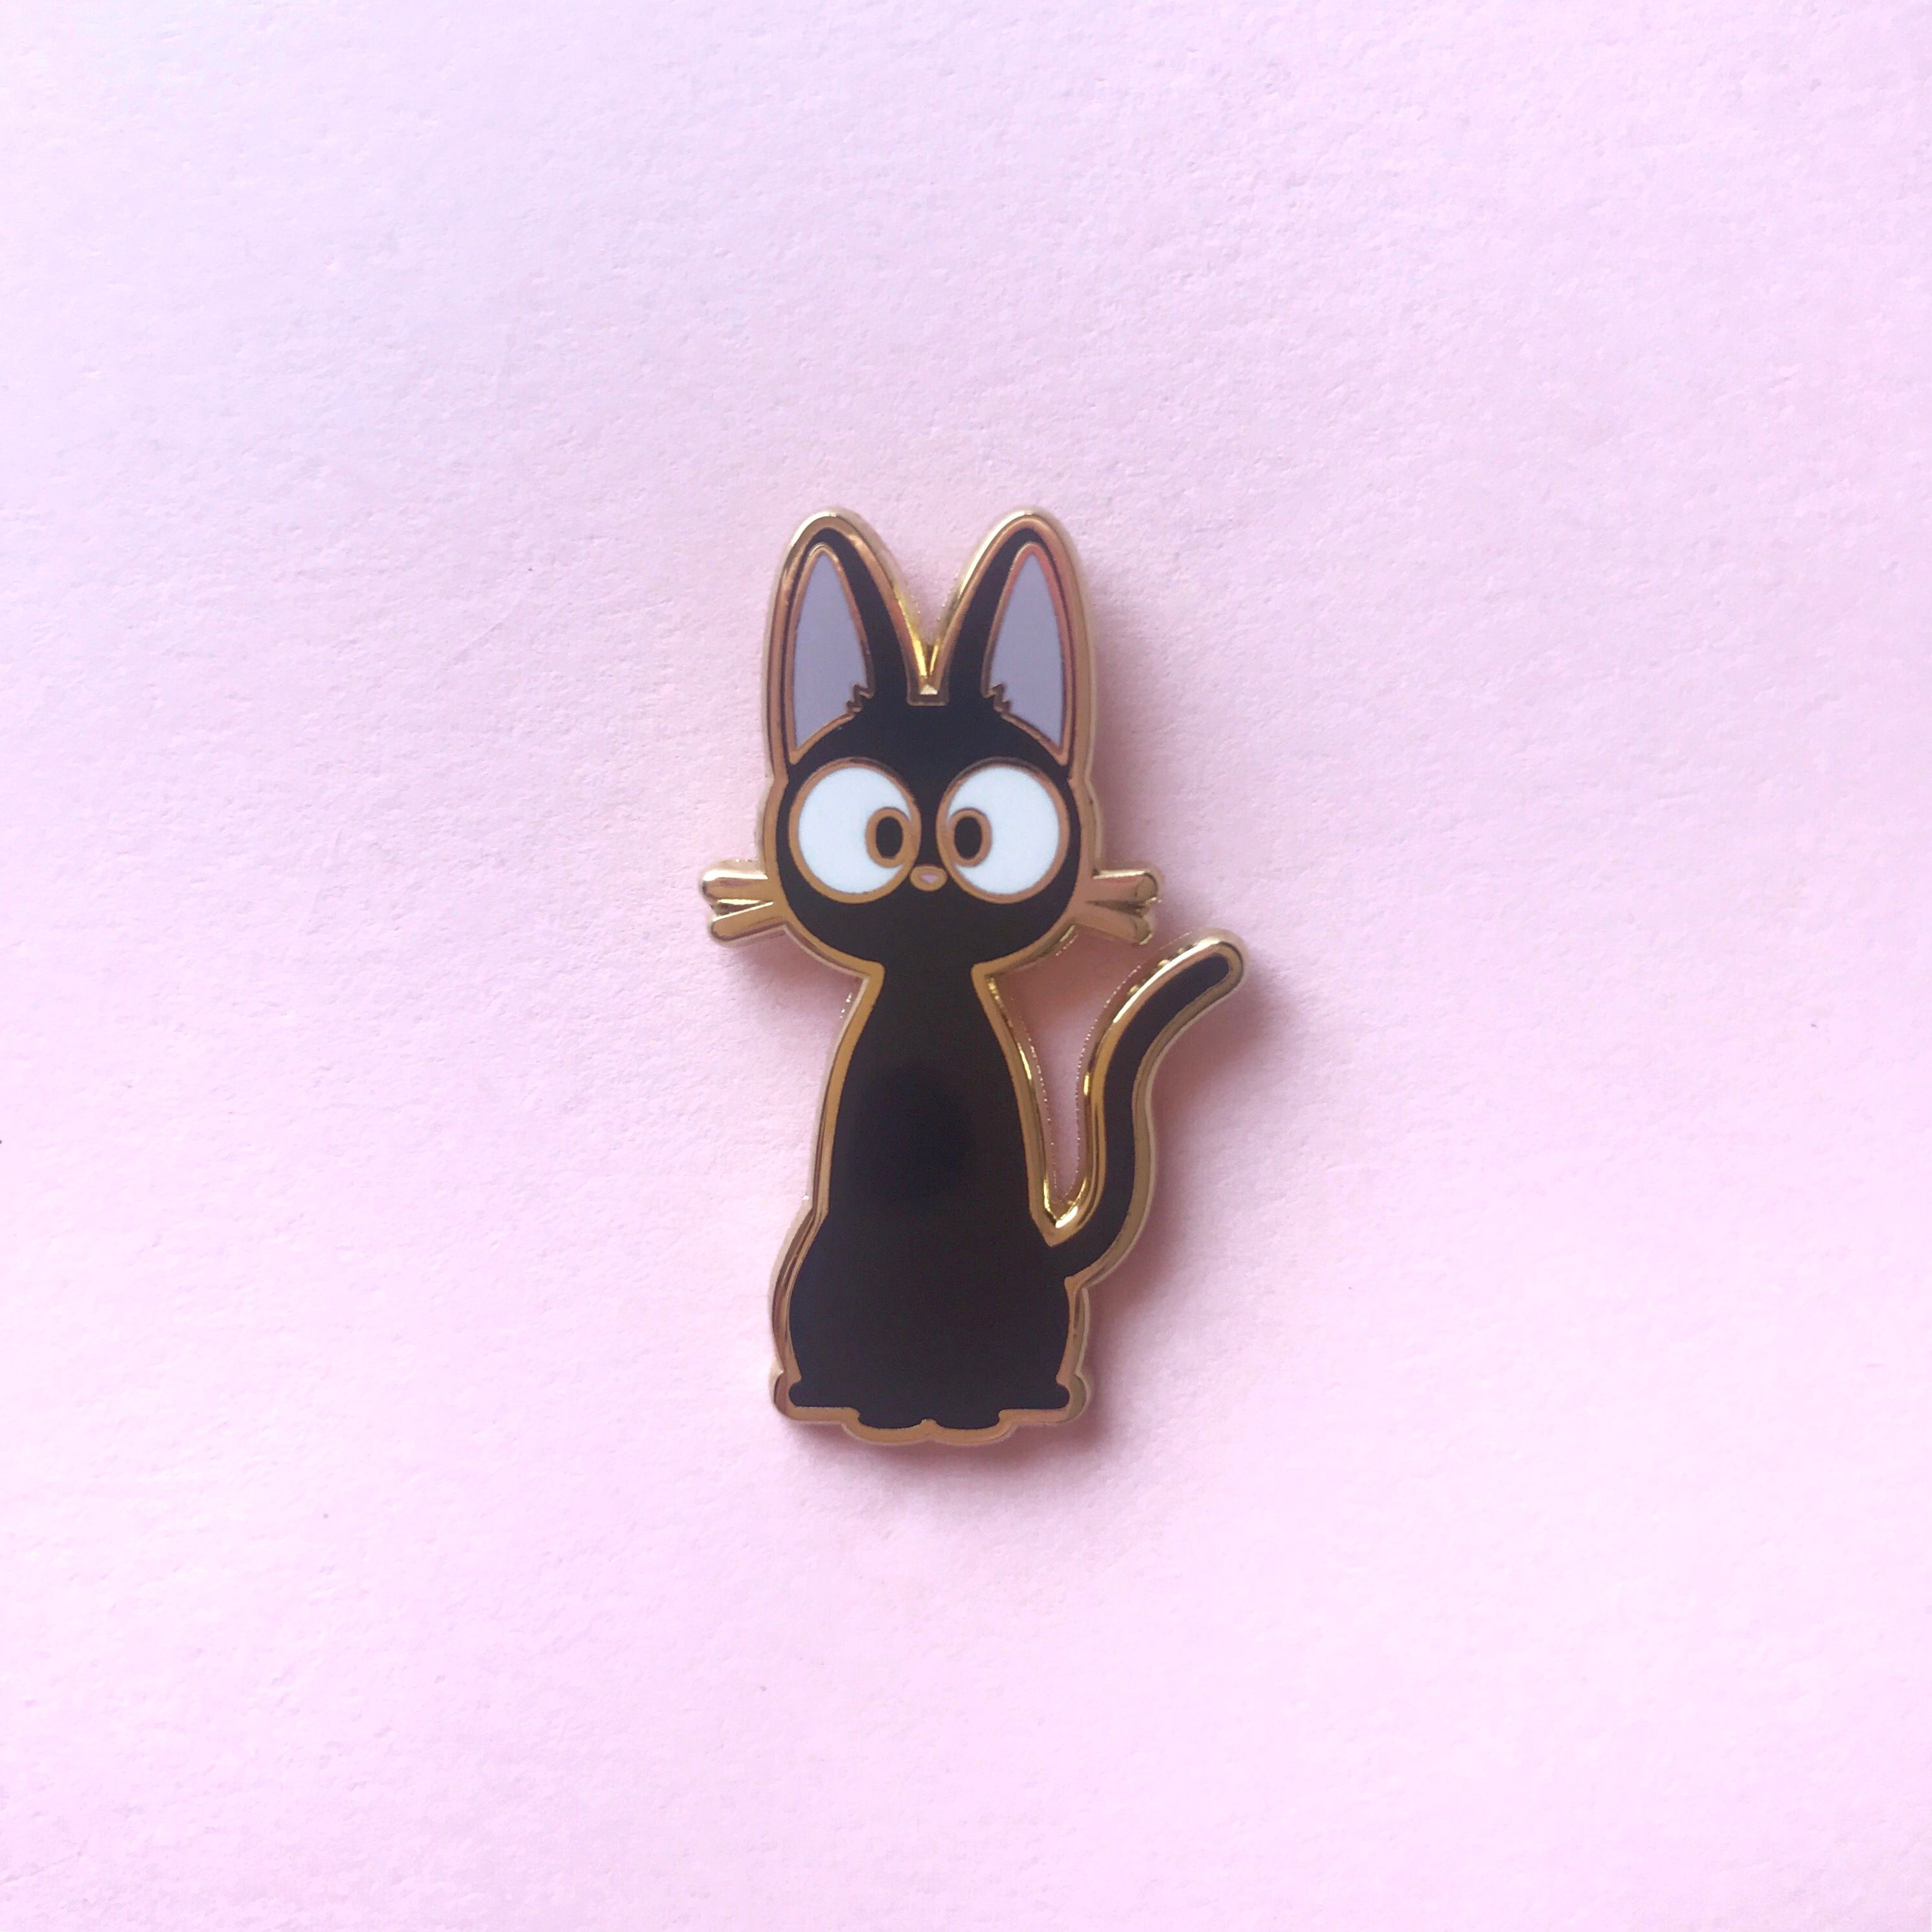 Witch Kitty Pin By Candy Corpse In 2020 Cat Enamel Pin Anime Merchandise Enamel Pins